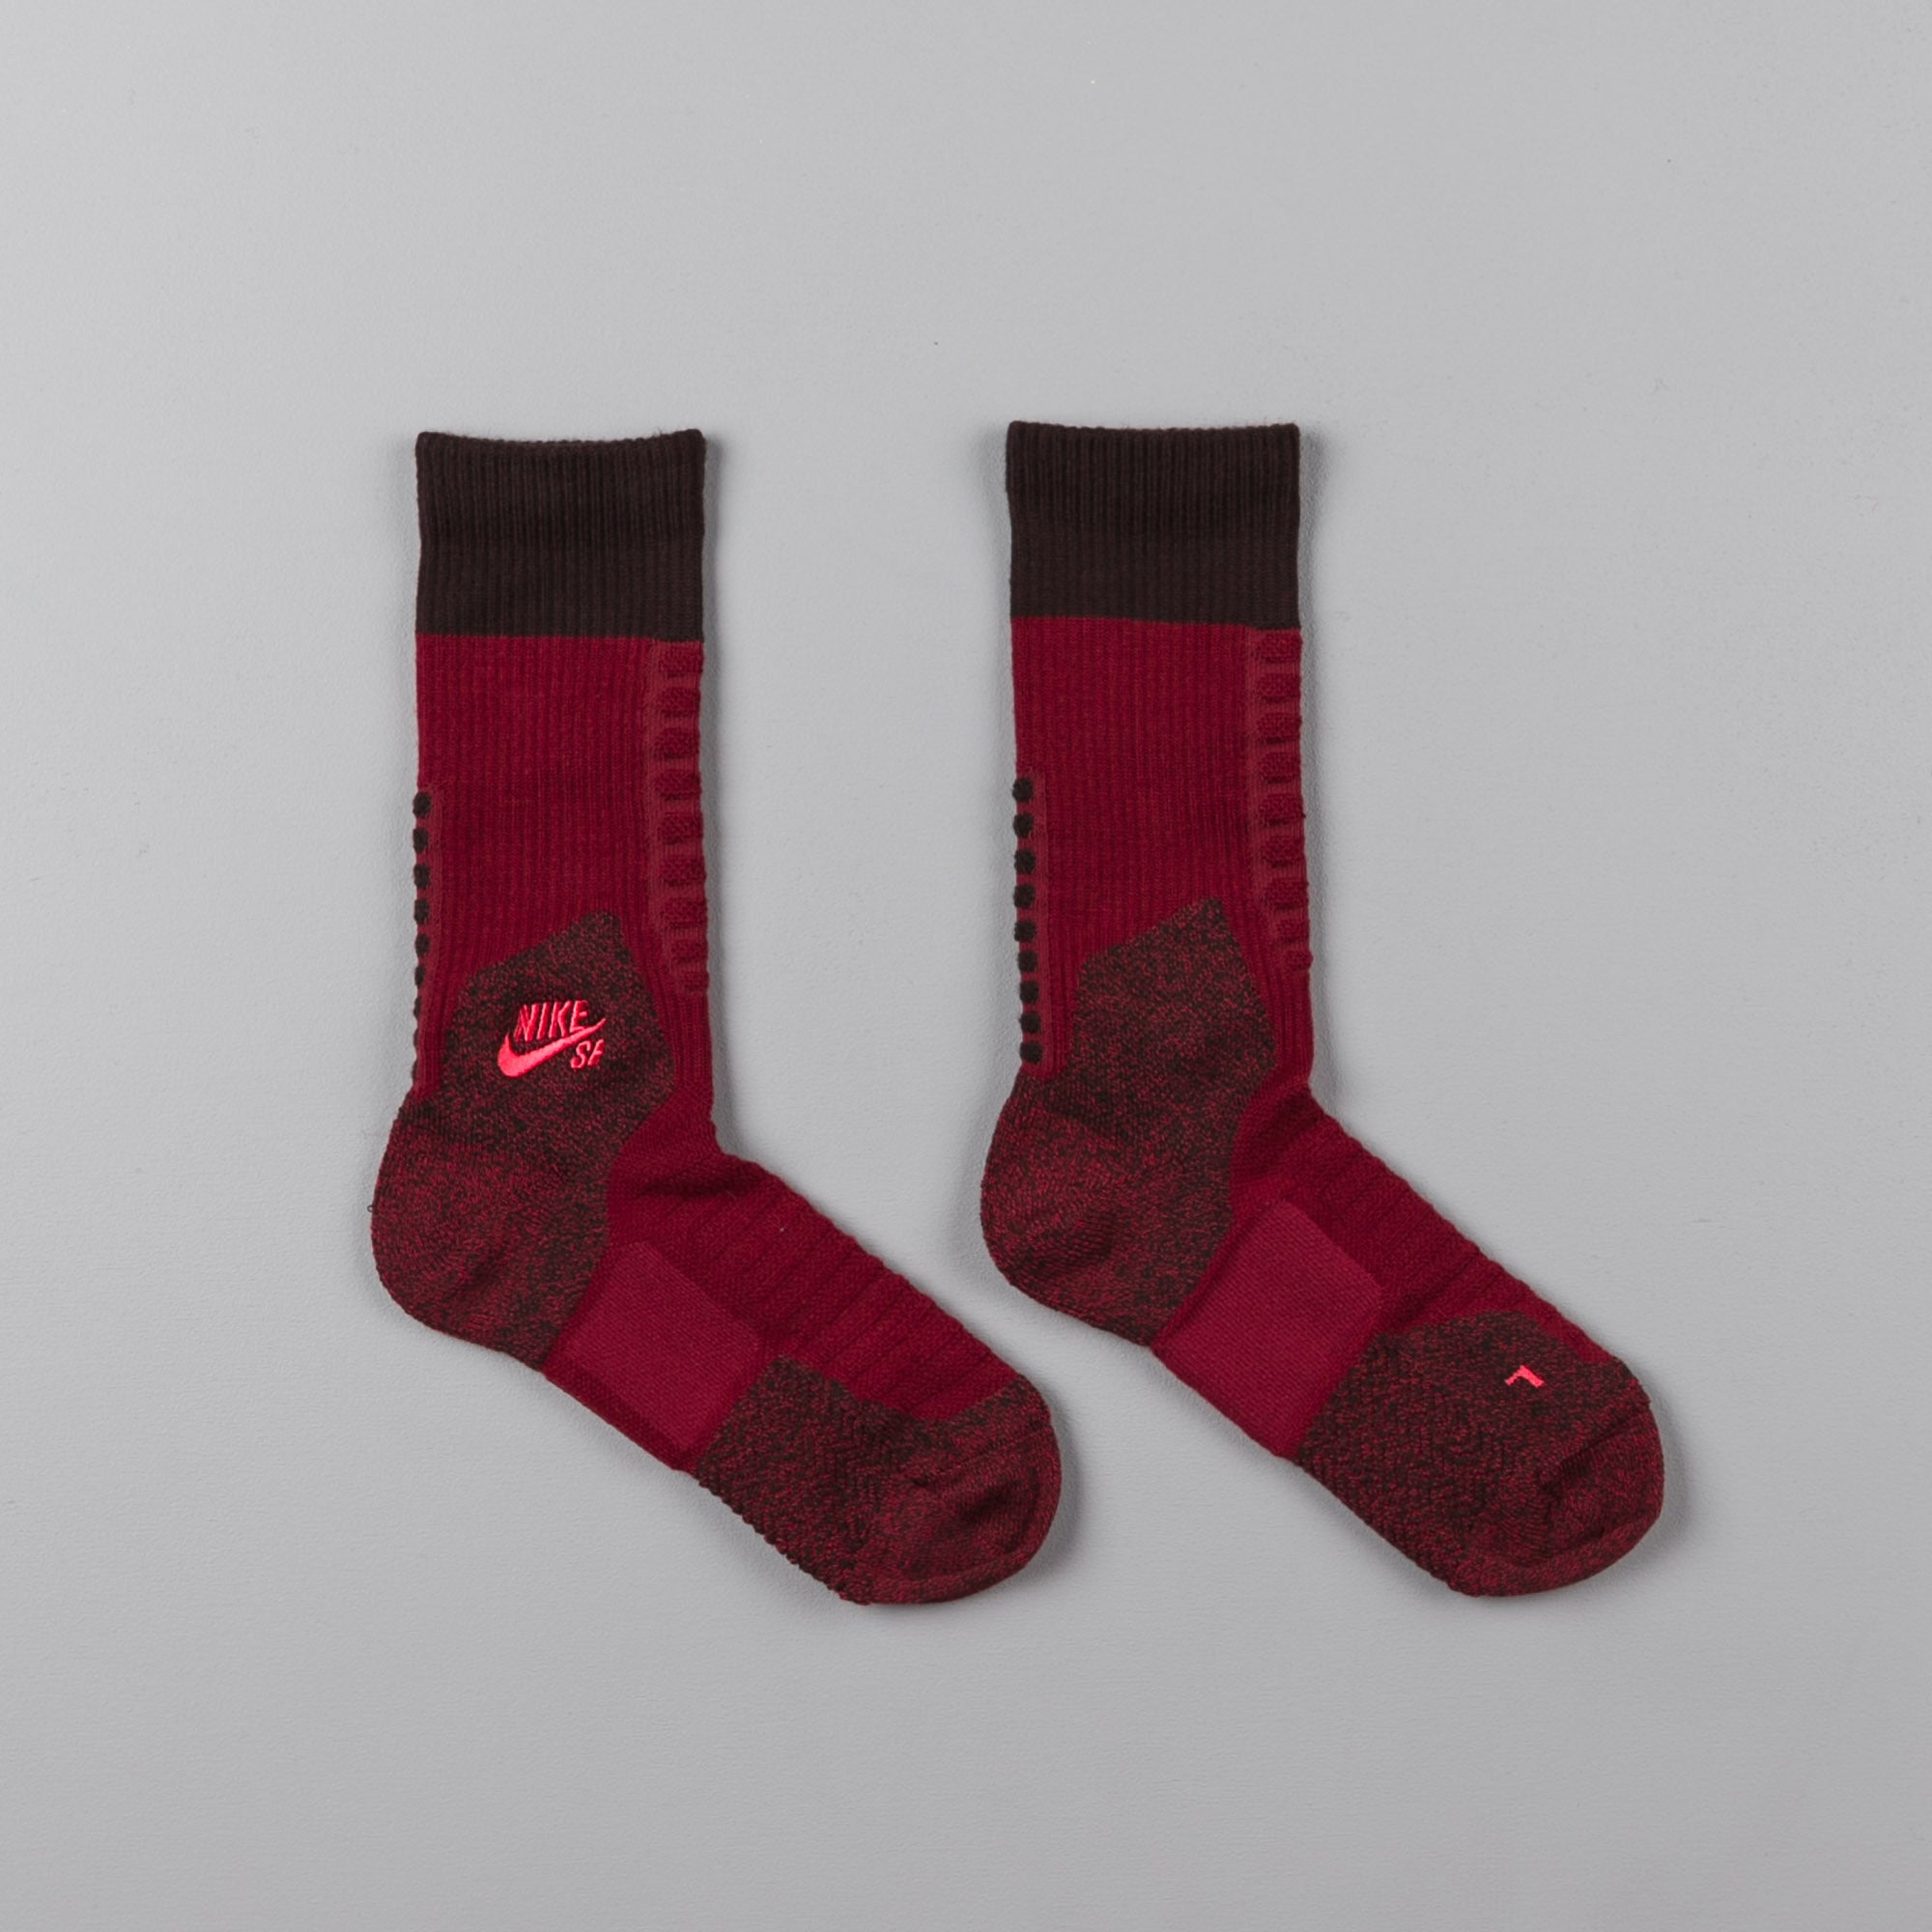 Nike SB Elite Crew Socks - Team Red / Velvet Brown / Ember Glow